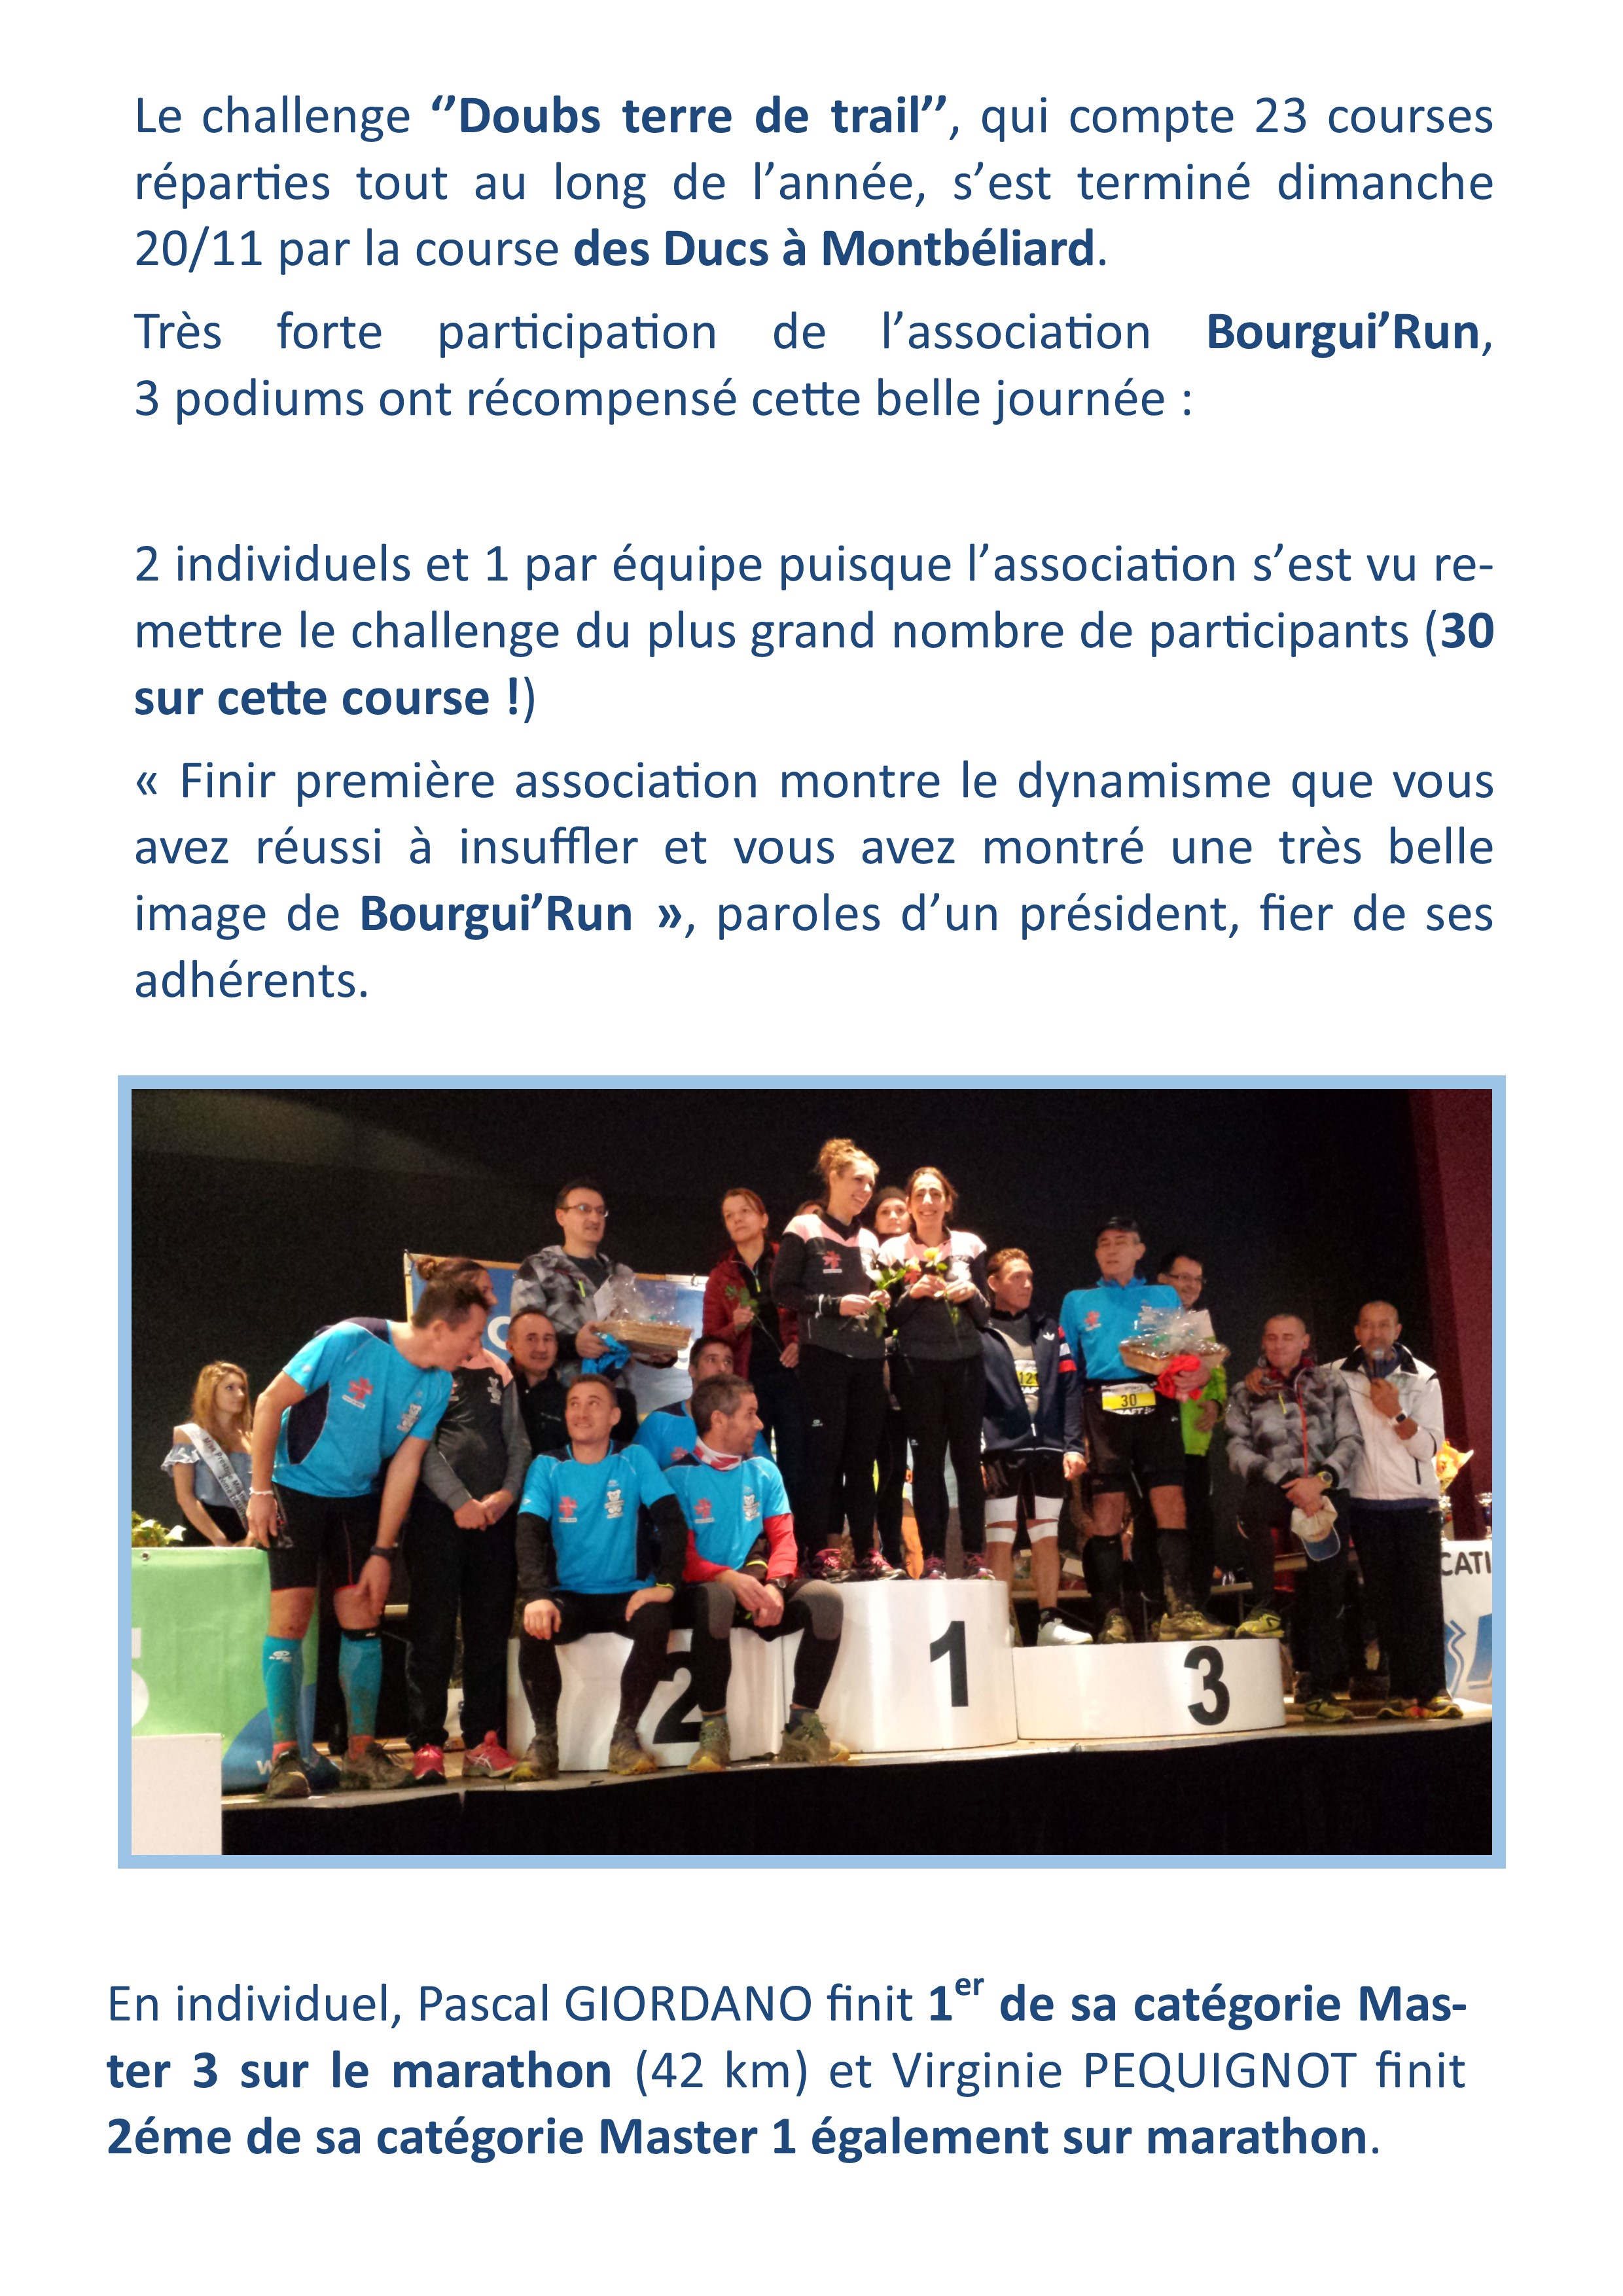 article-bourgui-run-page1